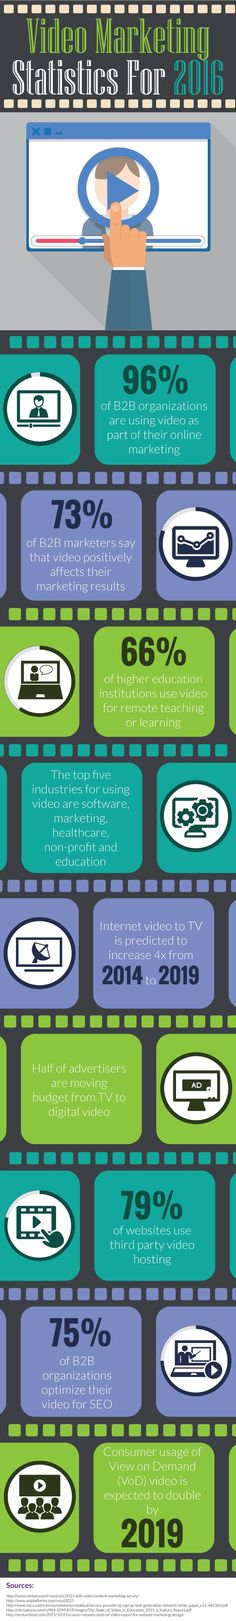 Top 5 Video Marketing Trends For 2016 [INFOGRAPHIC] | Social Media Today